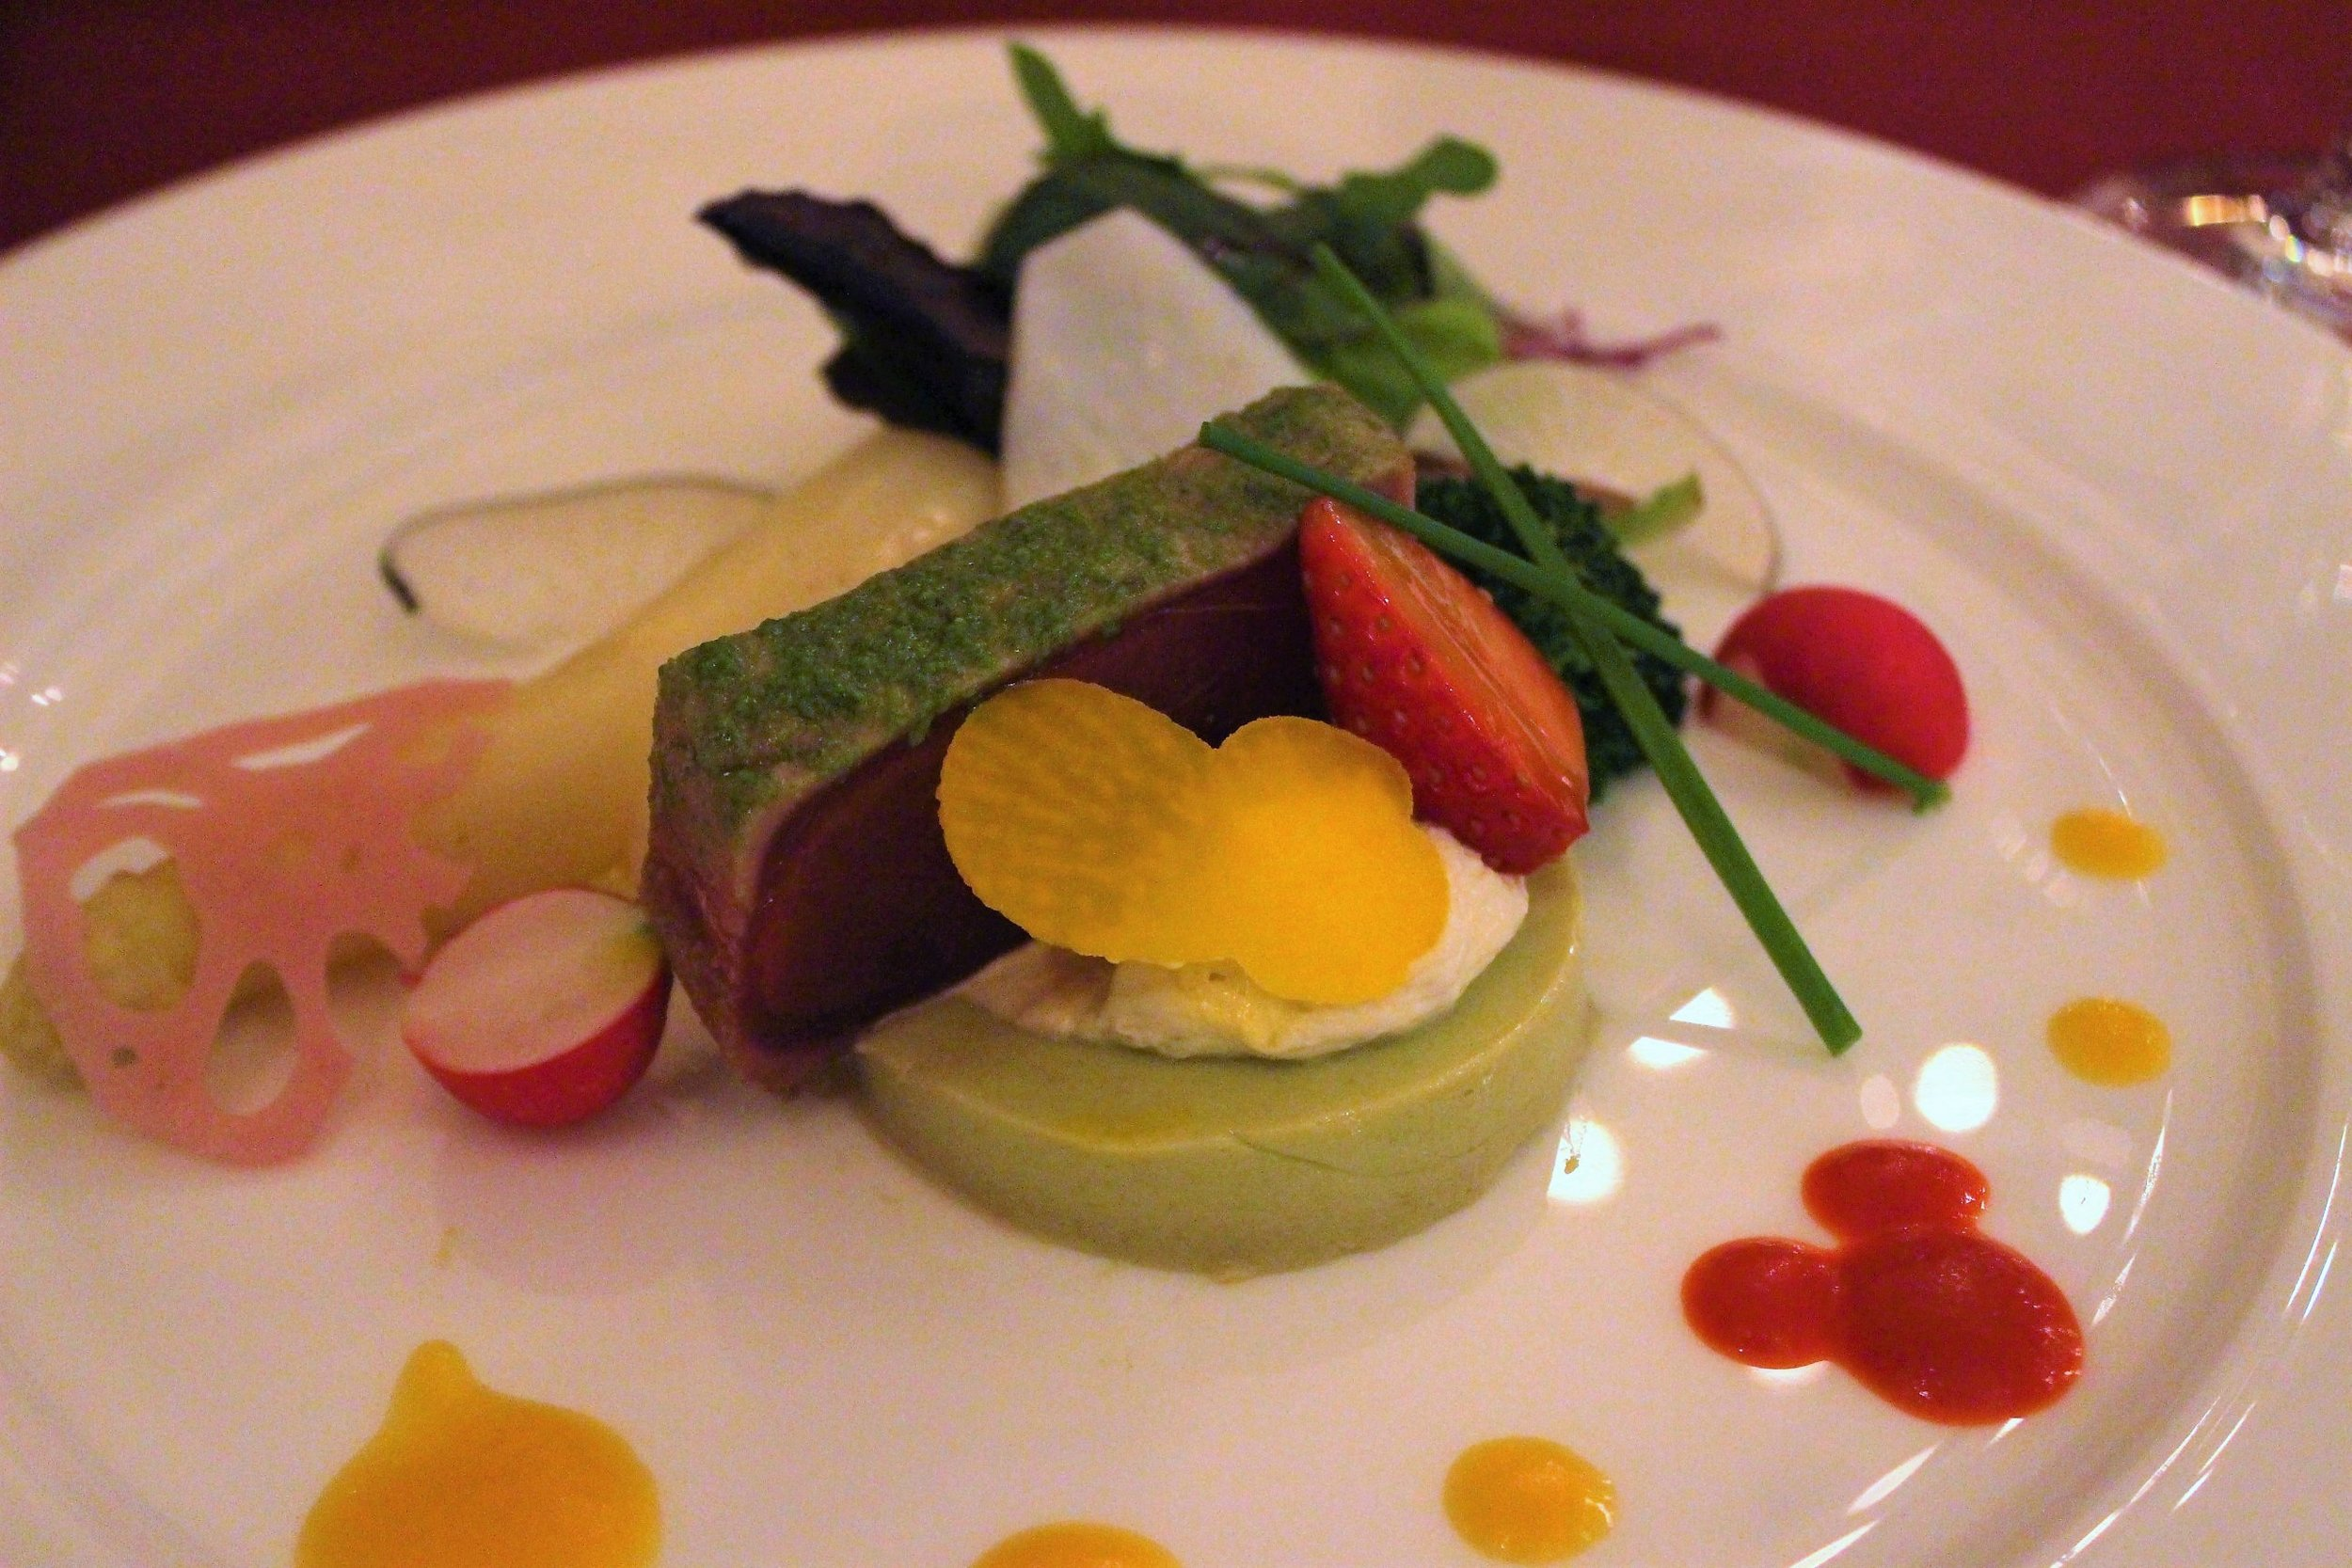 Marinated Tuna with Avocado Mousse and Assorted Vegetables at Magellan's in DisneySea, Tokyo, Japan